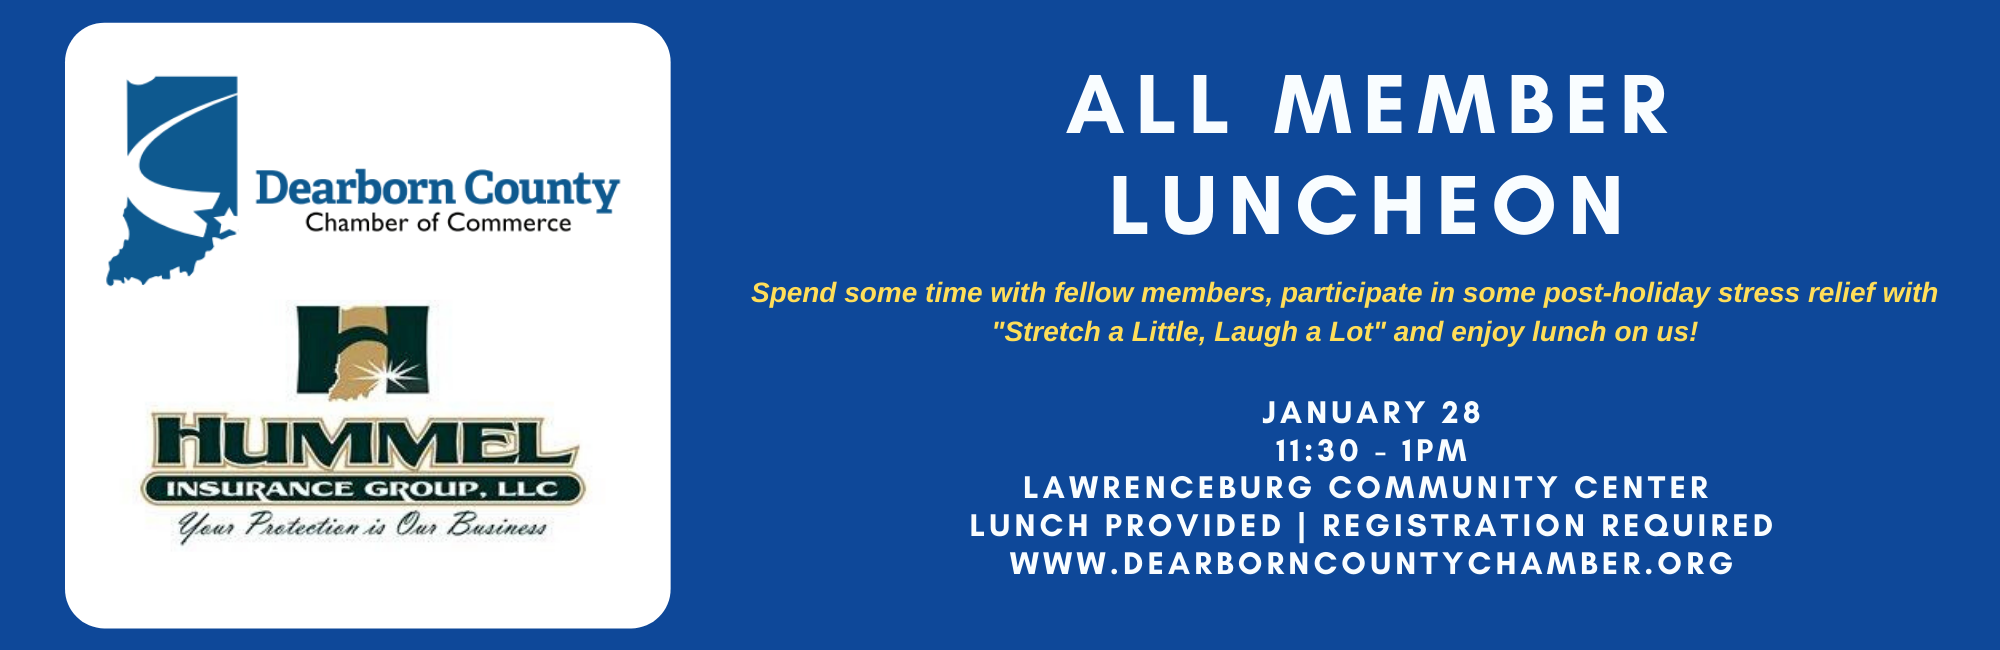 All Member Luncheon presented by Hummel Insurance